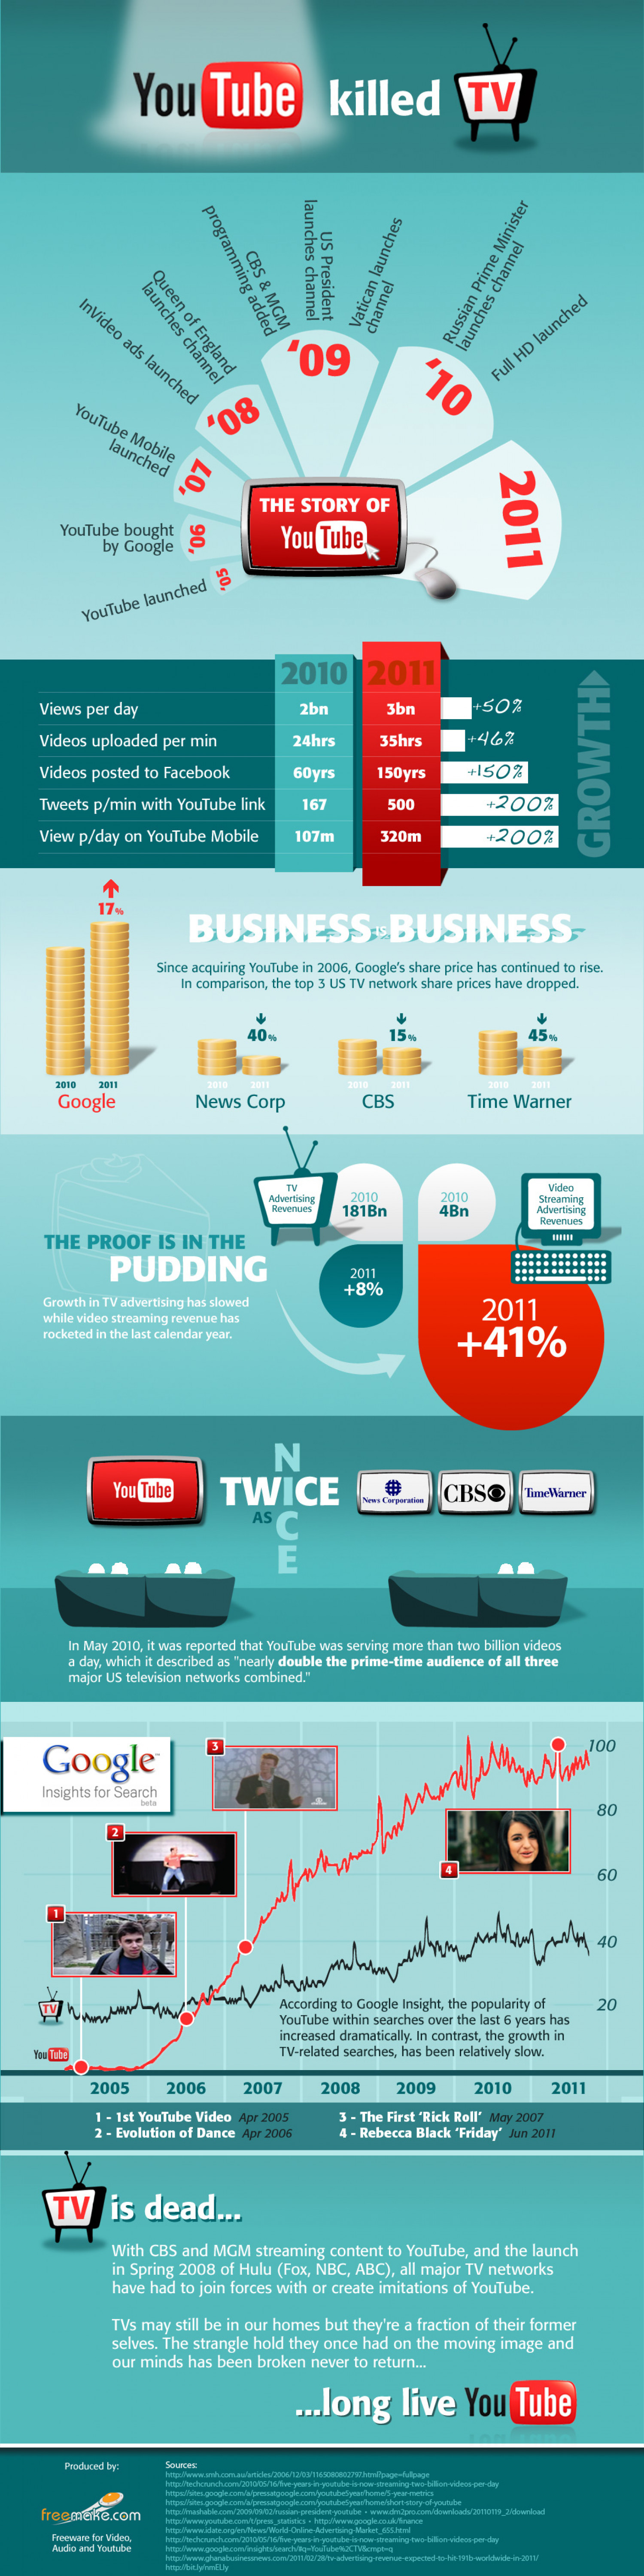 Youtube Killed TV Infographic